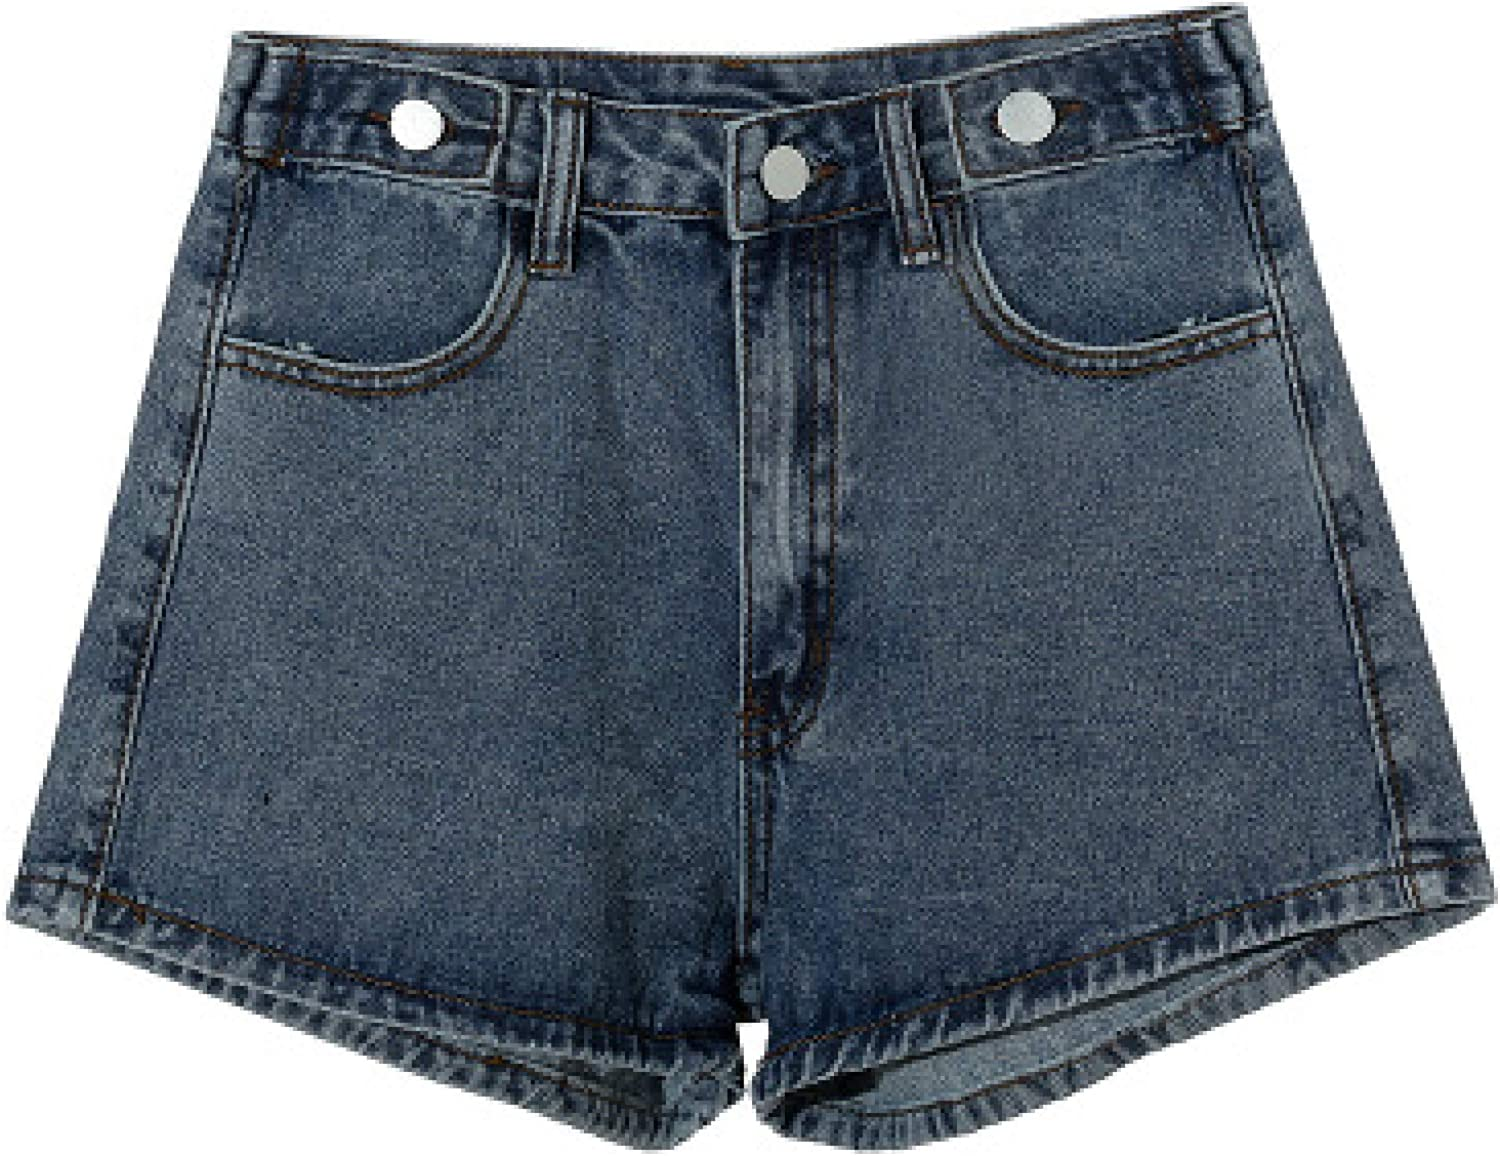 Women's Shorts Fashion High Waist 67% OFF of fixed price All-Match Casual Trend Simple 100% quality warranty